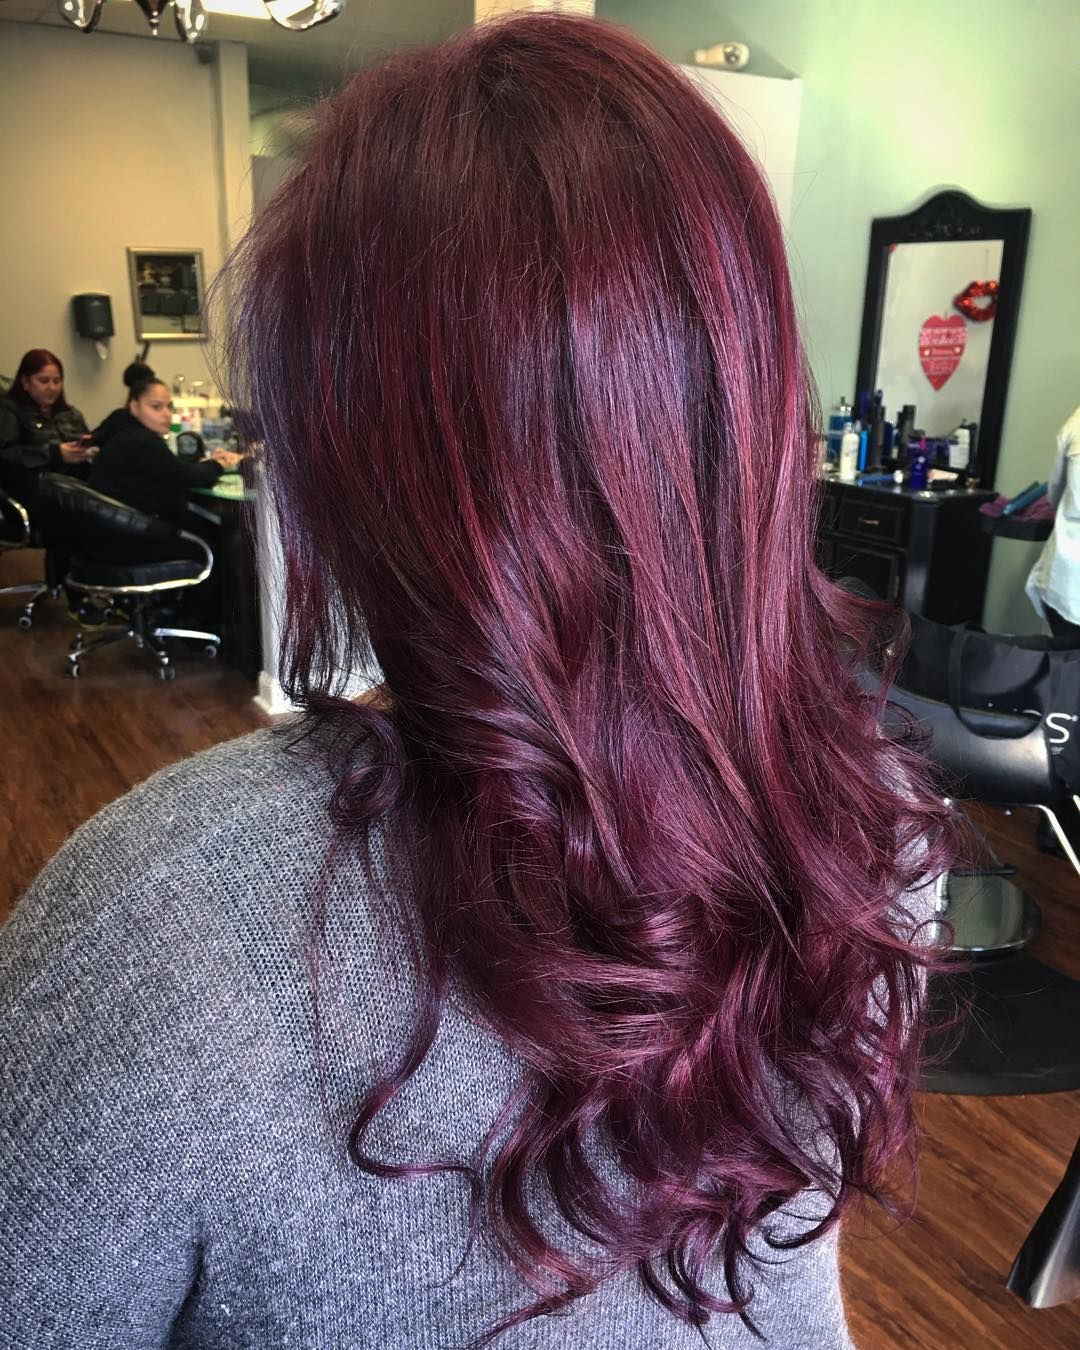 50 Vibrant Red Hair Color Ideas — Violet, Deep Dark, Light Burgundy and More